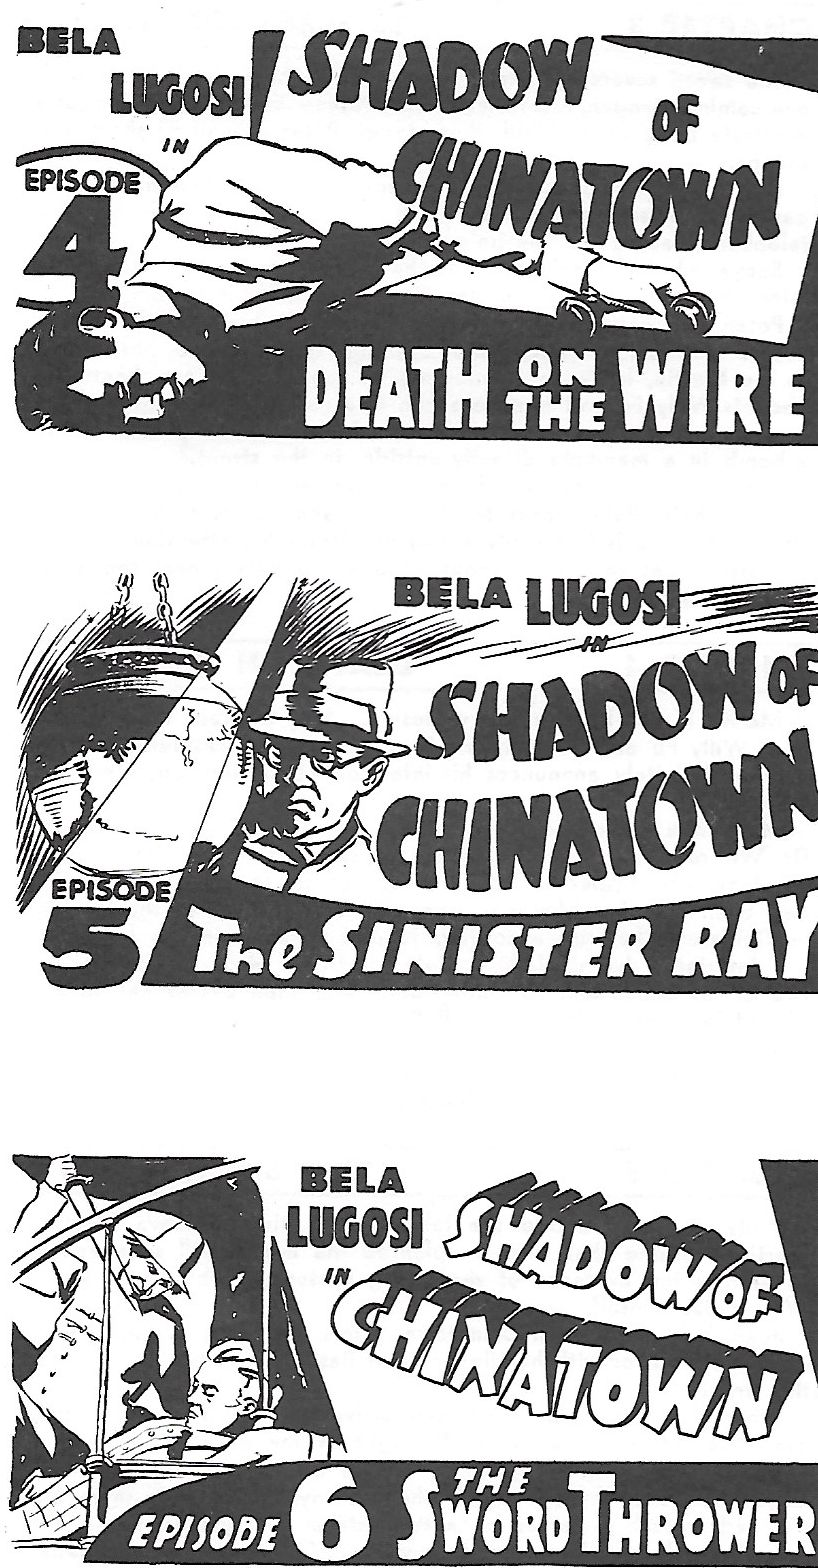 Bela Lugosi in Shadow of Chinatown (1936)